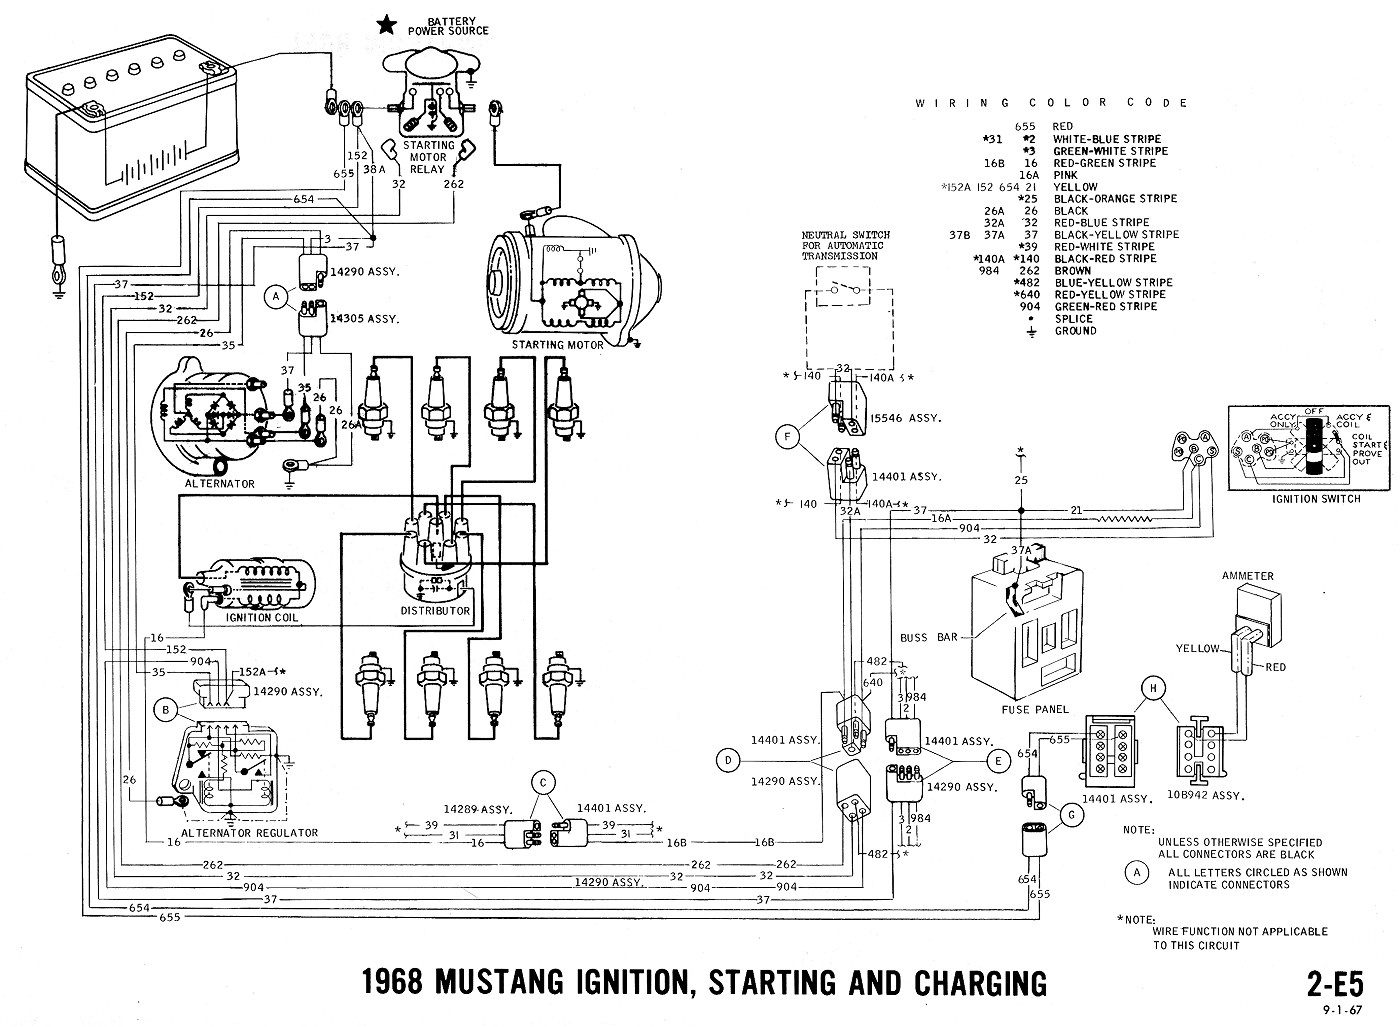 E5 1968 mustang wiring diagram 1966 mustang wiring diagrams \u2022 free 1969 mustang alternator wiring diagram at eliteediting.co